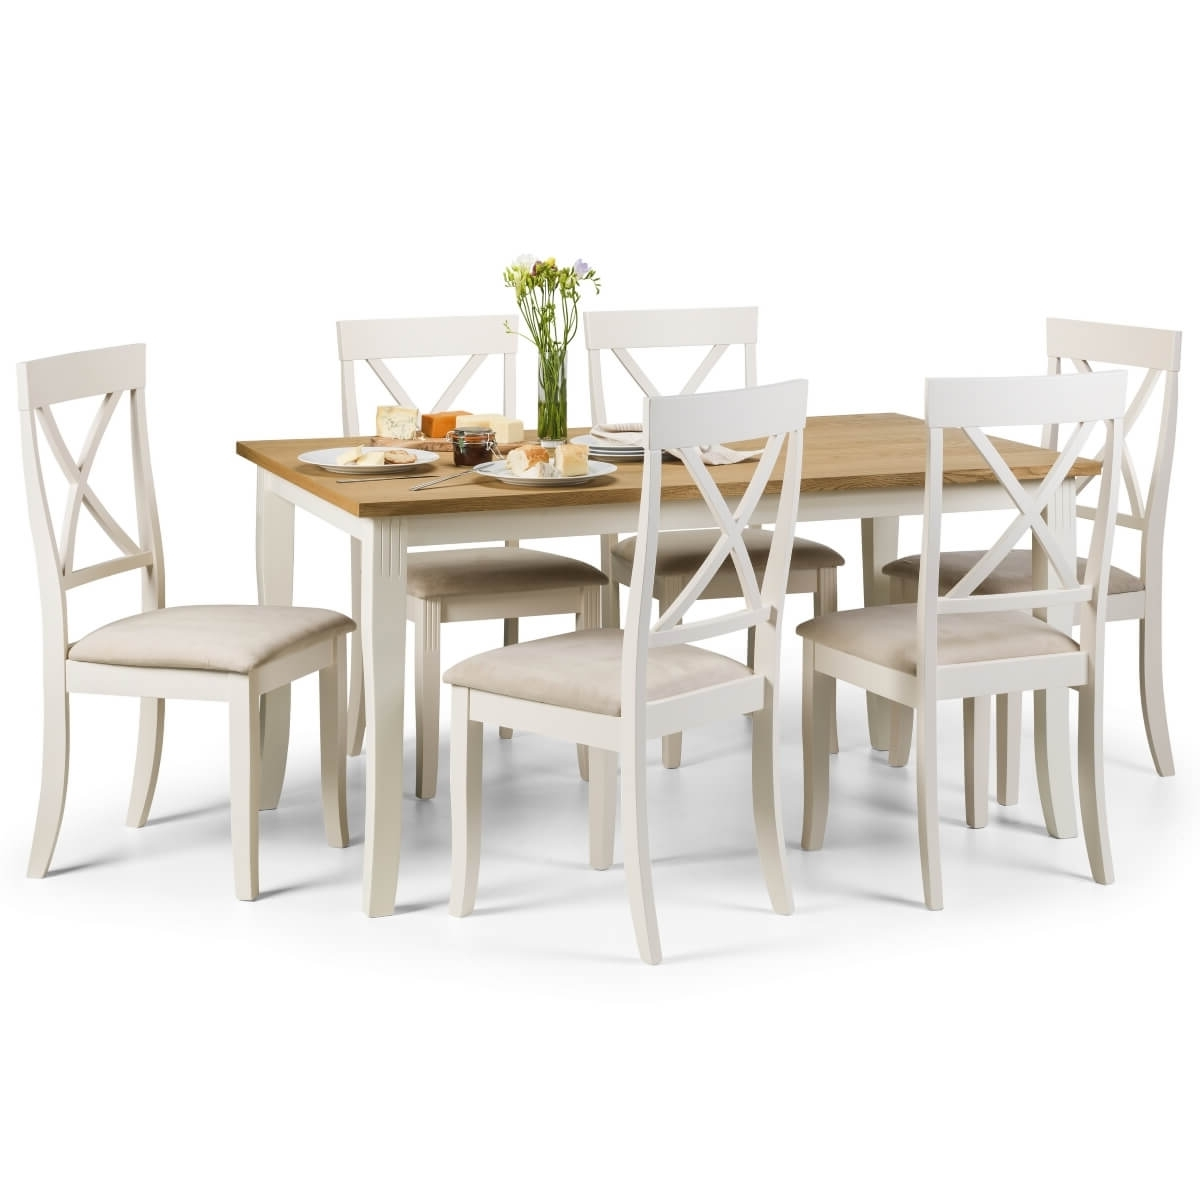 Trendy Dining Set – Davenport Dining Table And 6 Chairs In Ivory Oak Dav005 Inside Oak Dining Tables With 6 Chairs (View 18 of 25)